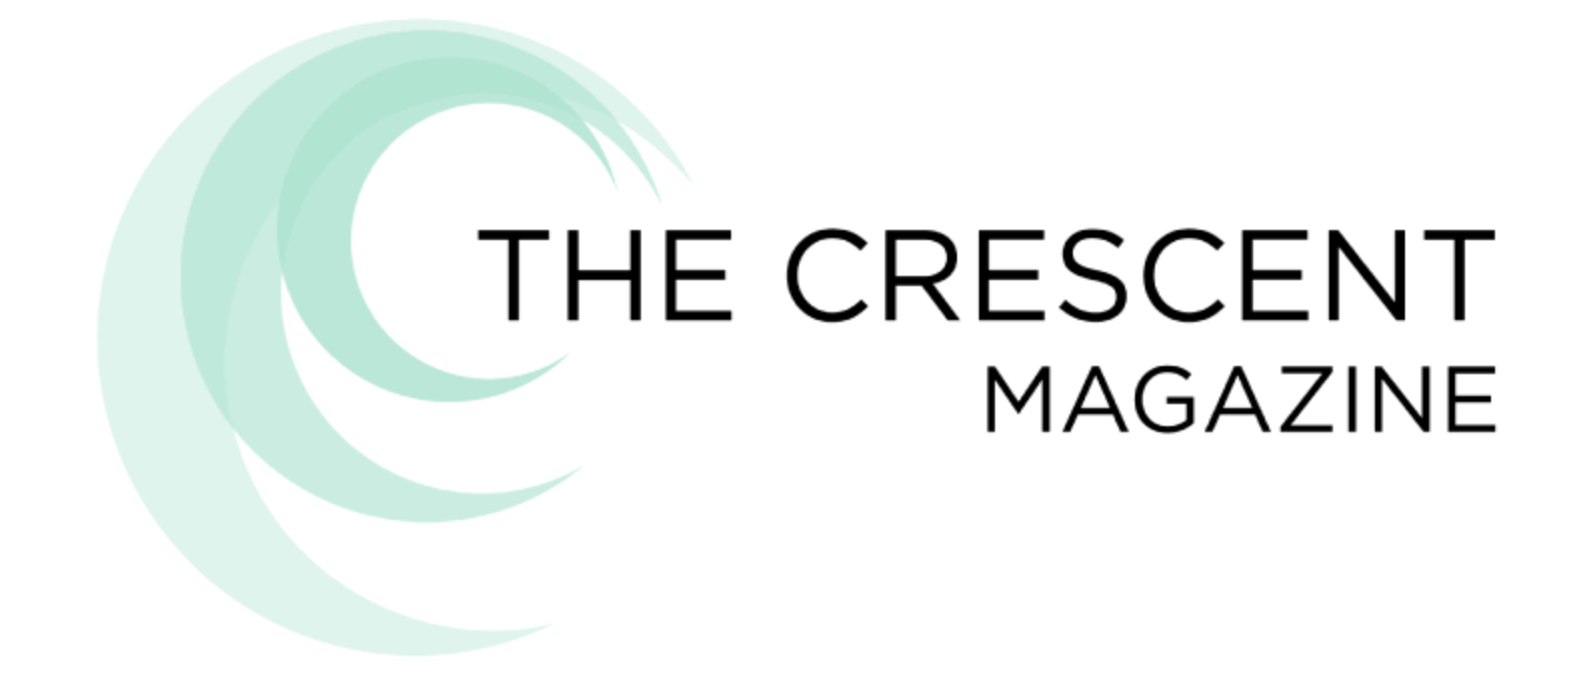 The Crescent Magazine: Tulane's Online Lifestyle Publication